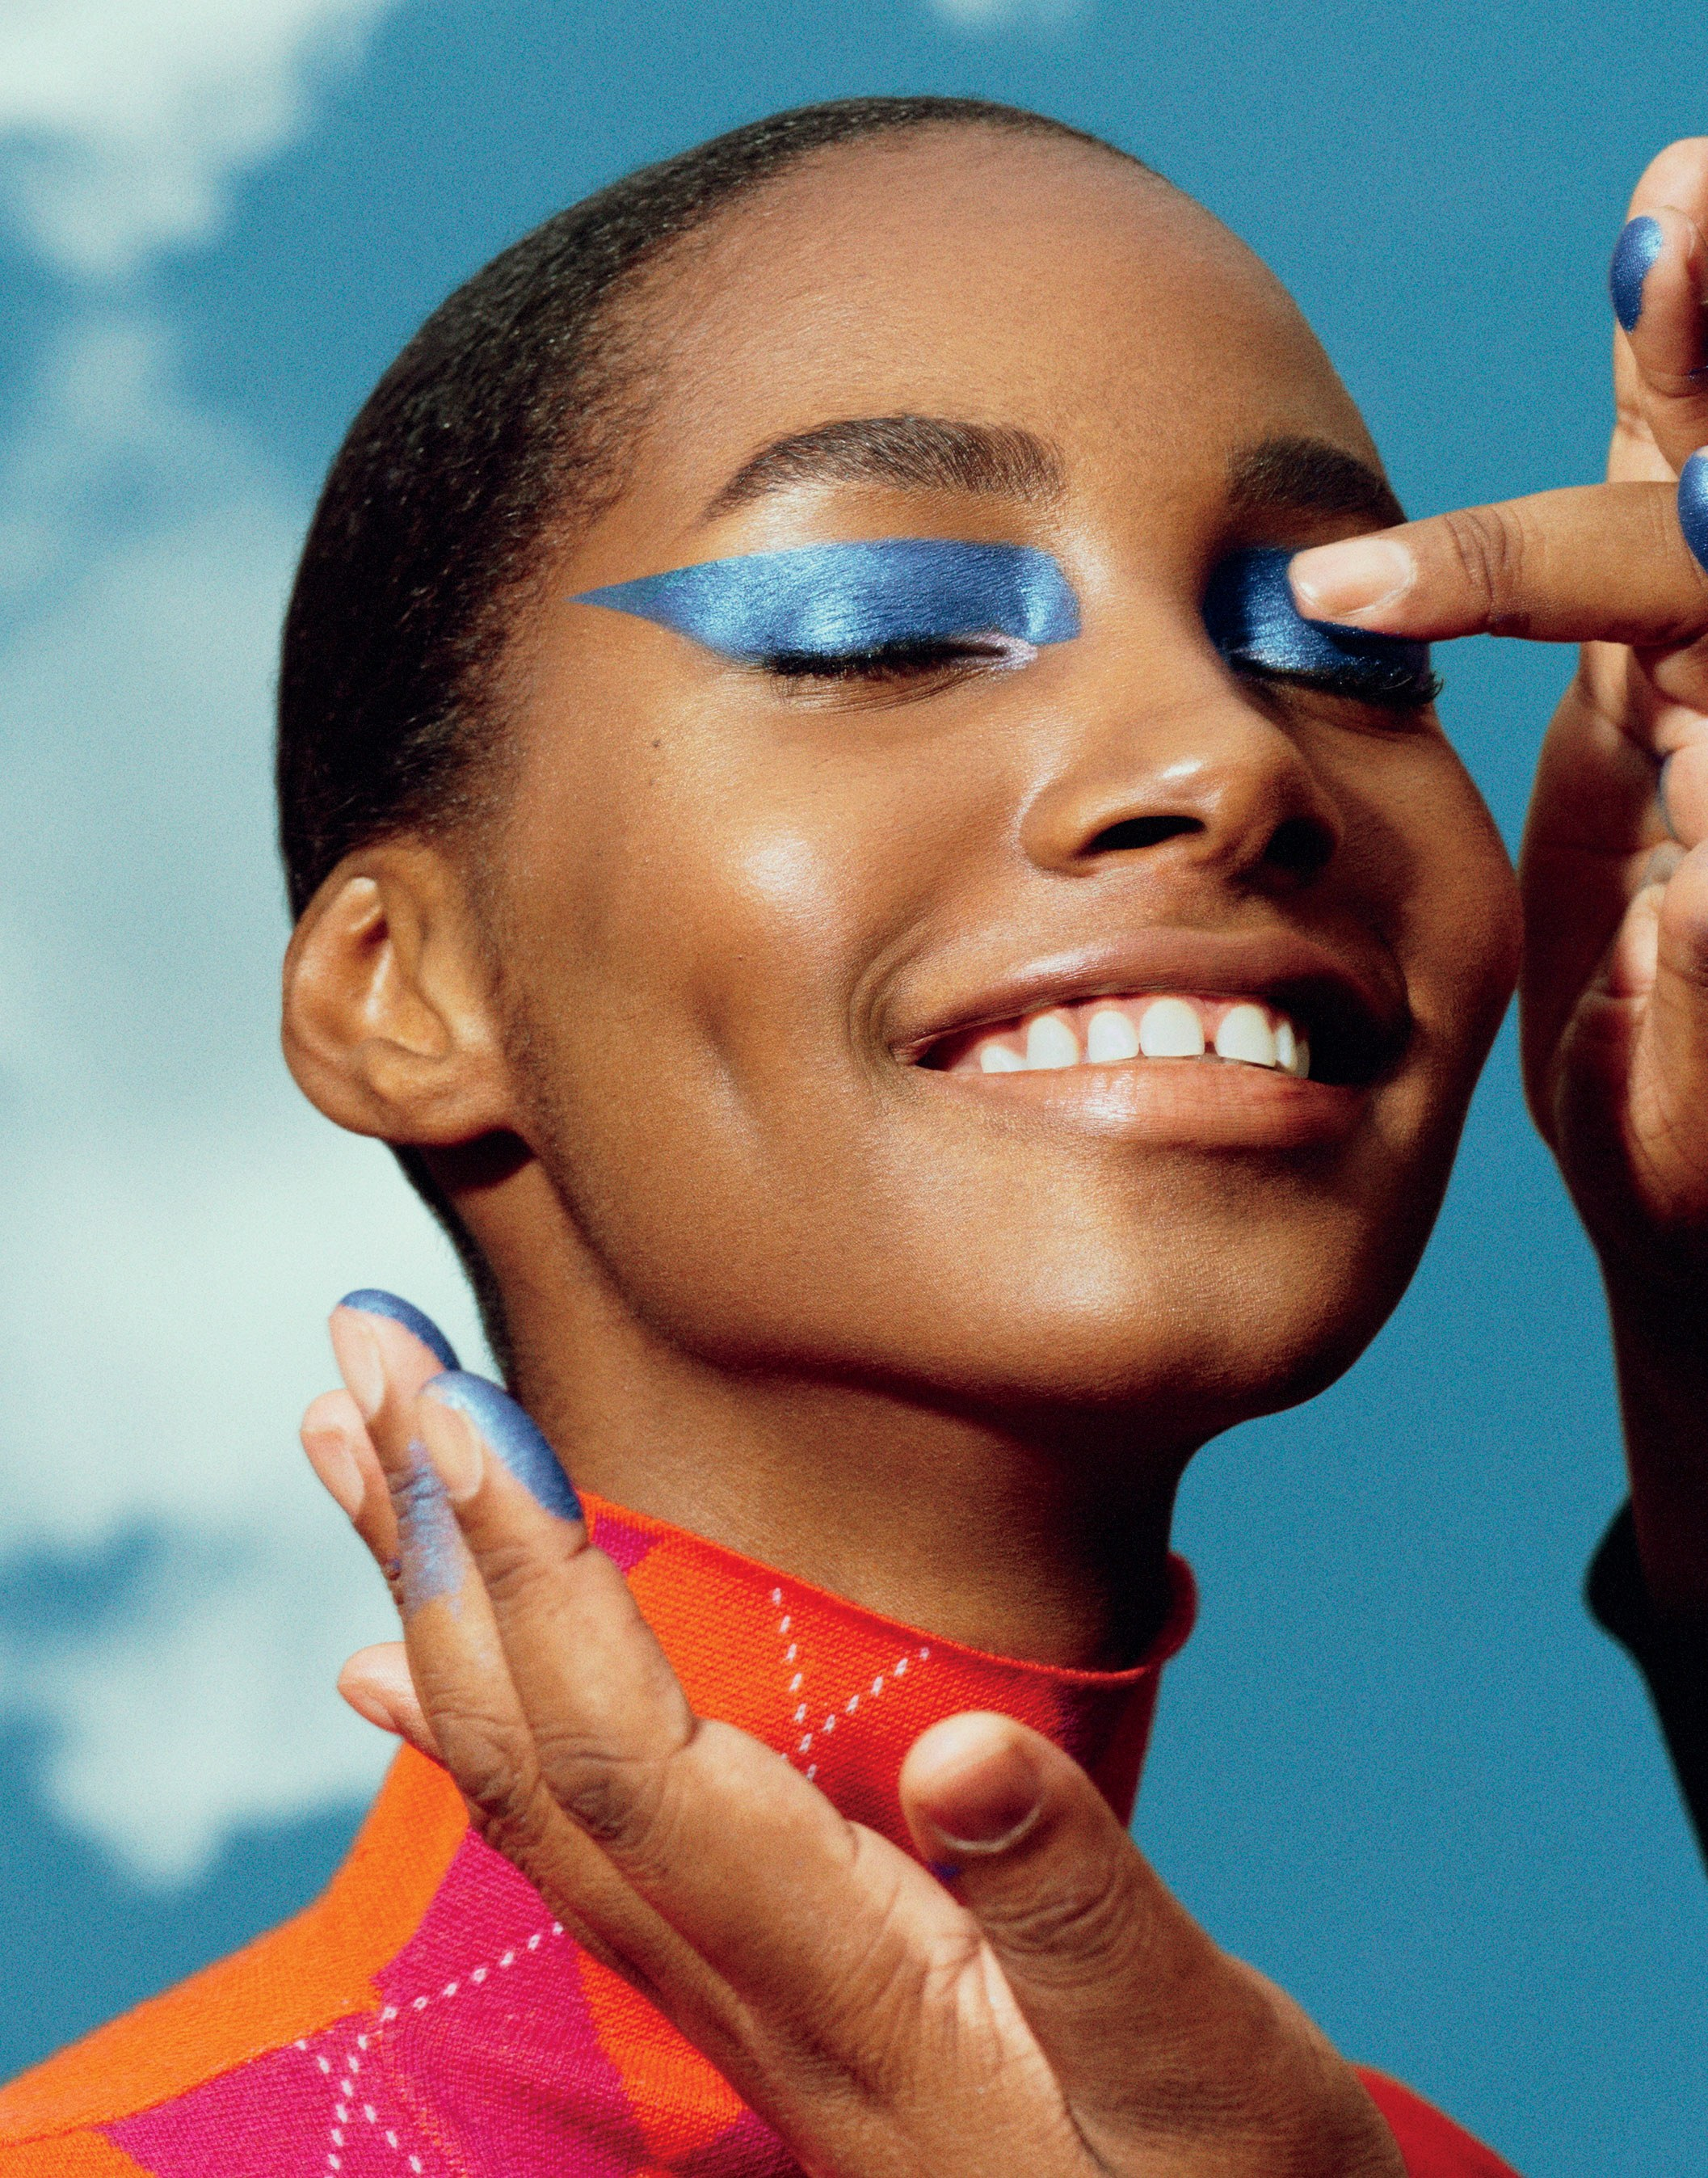 pat-mcgrath-first-collection-color-cosmetics-vogue-september-2017.jpg